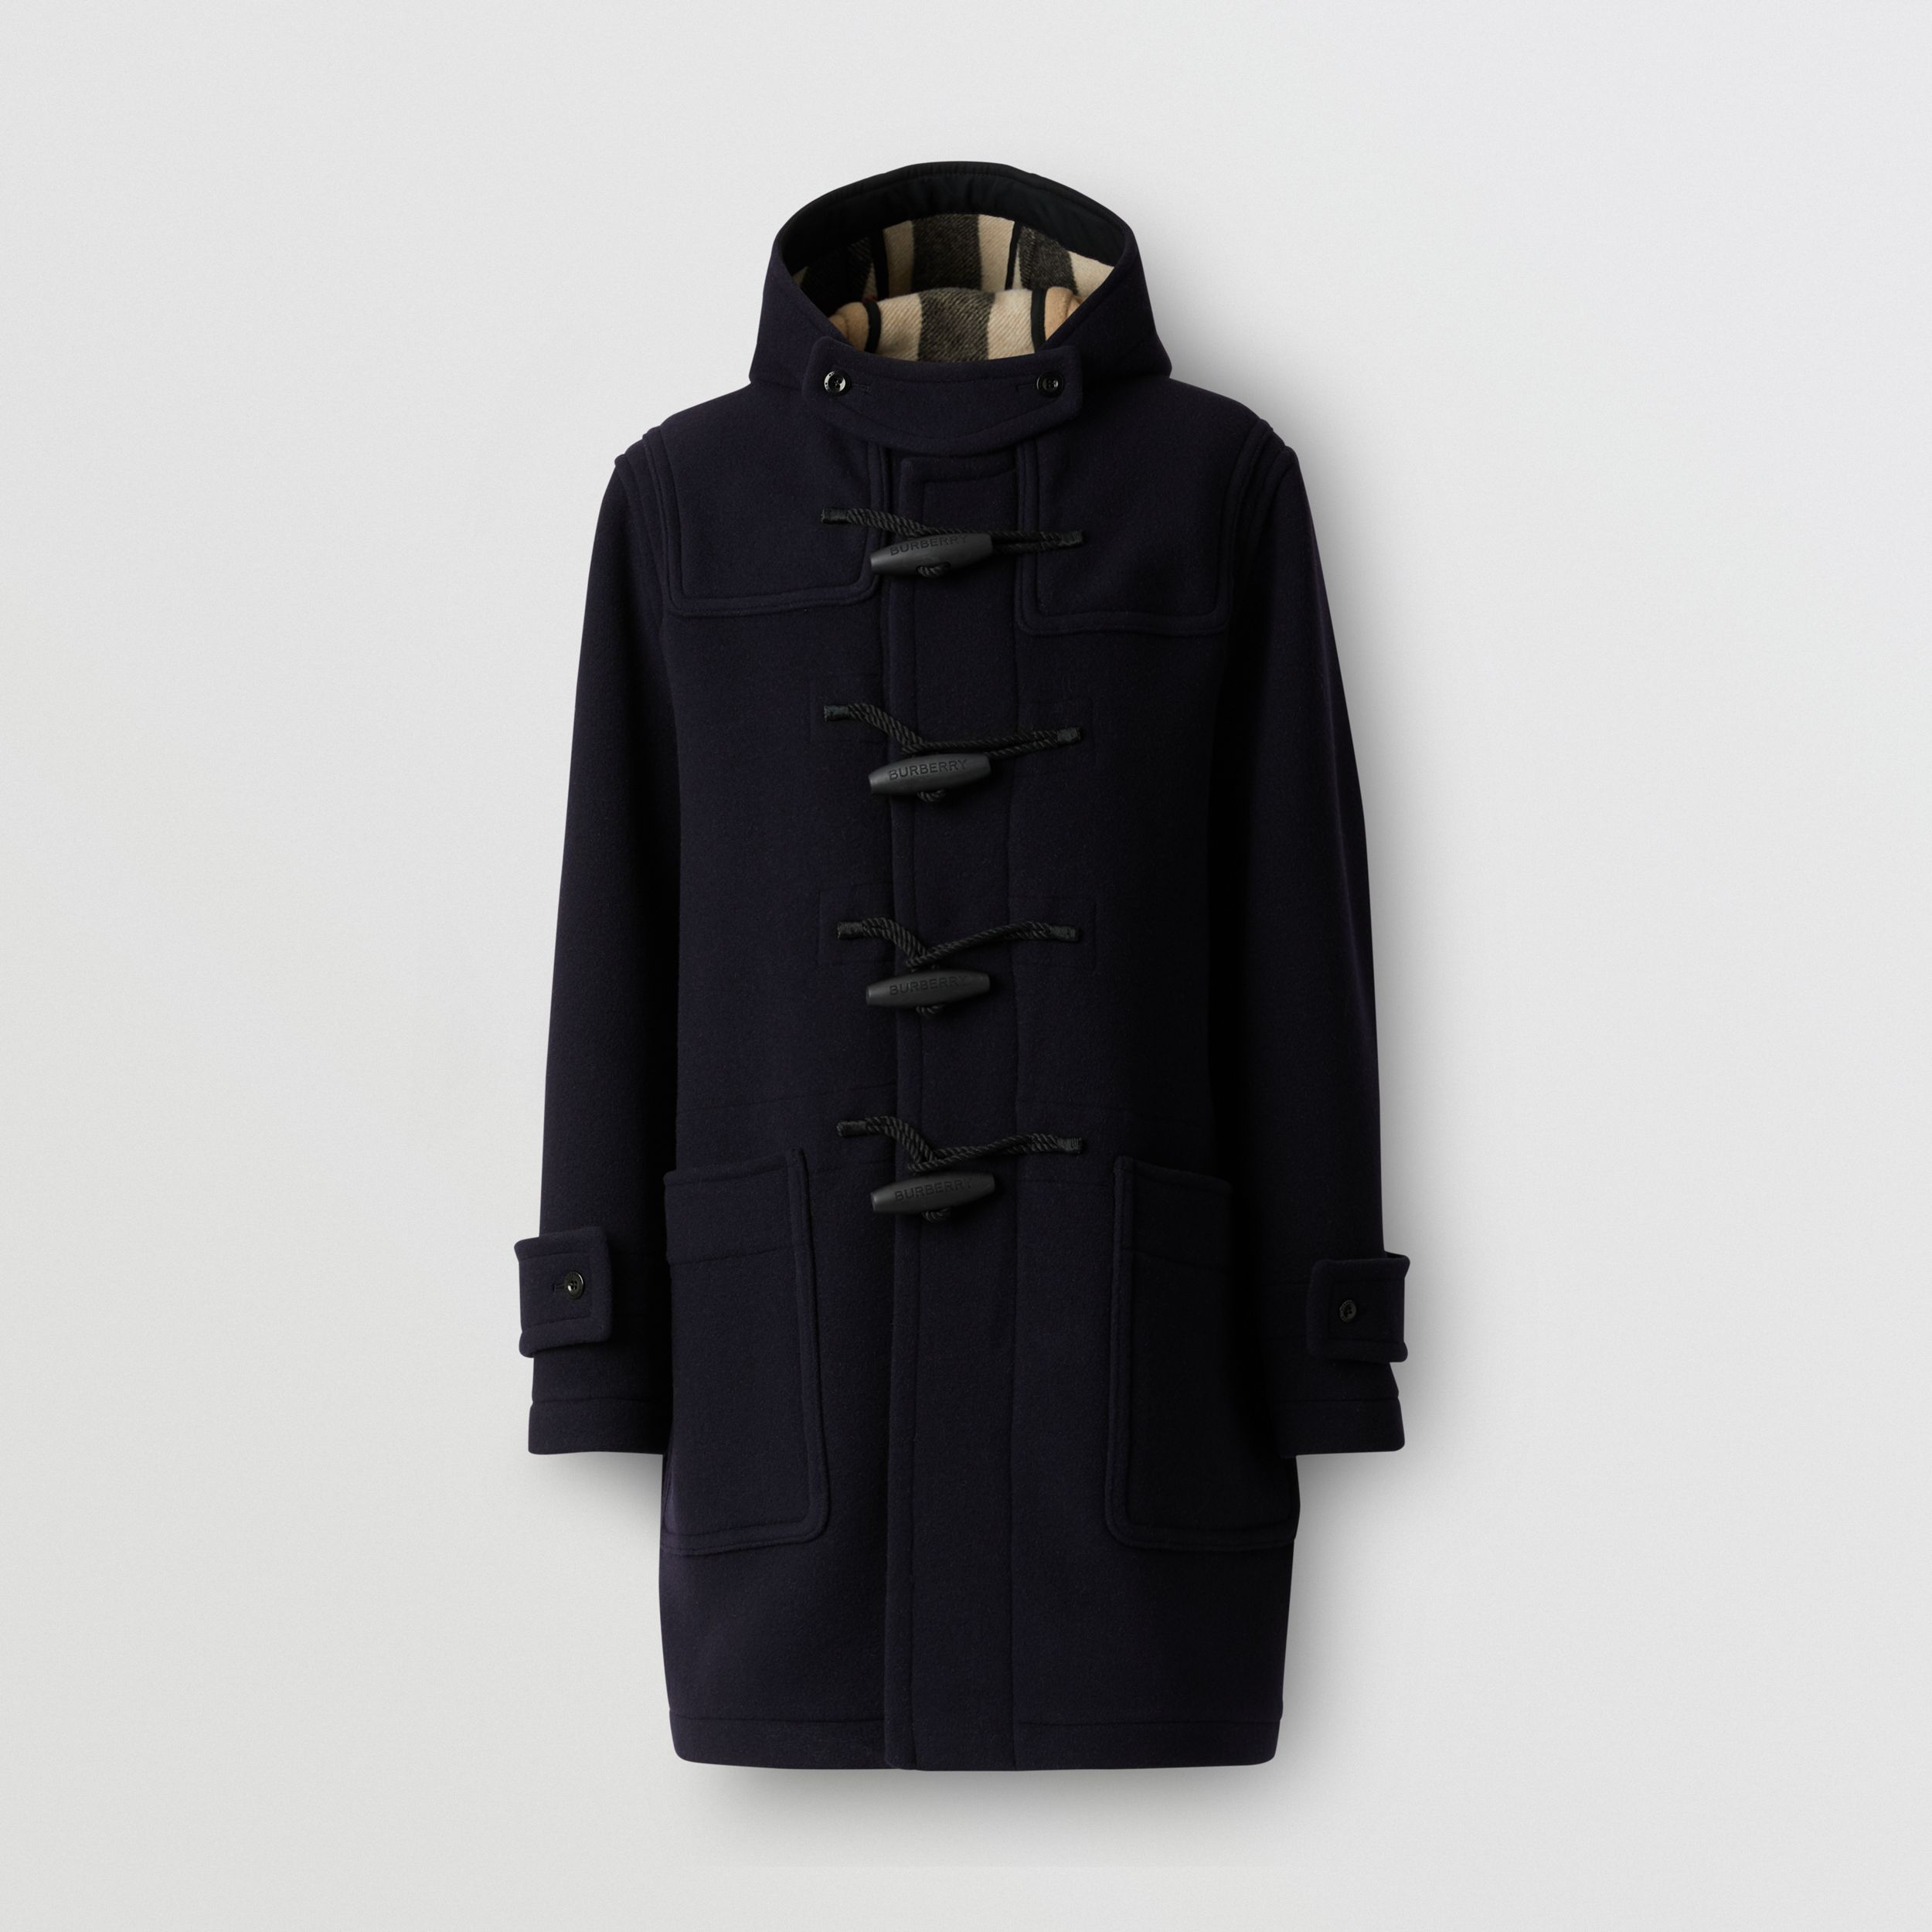 Check-lined Technical Wool Duffle Coat in Navy - Men | Burberry - 4